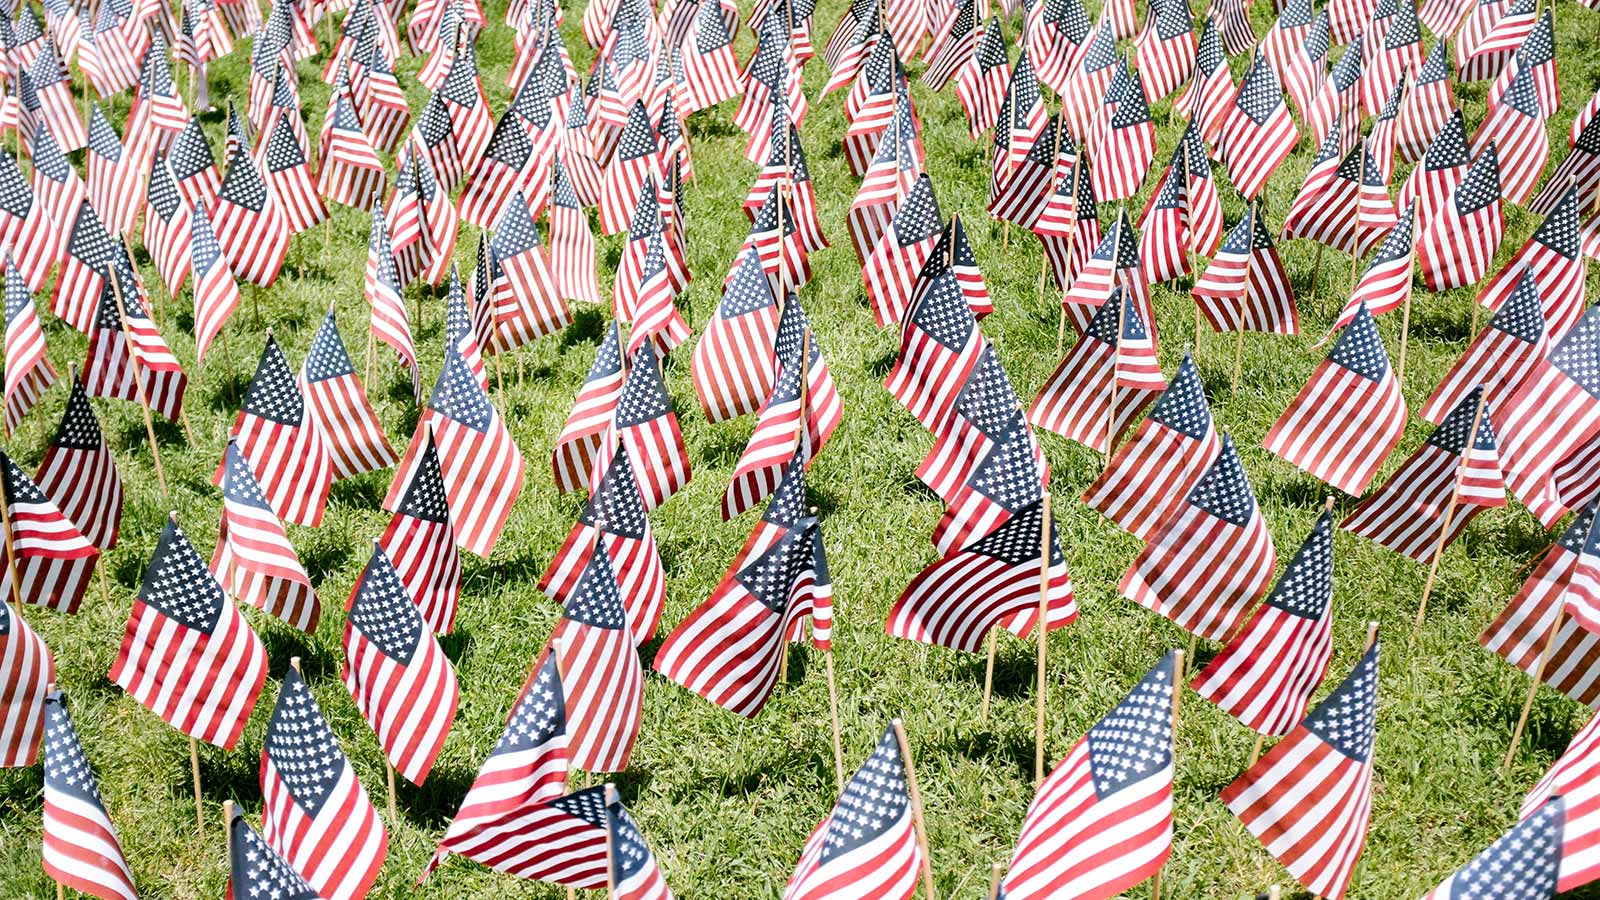 Help Us Flag The Lawn For Veterans Day